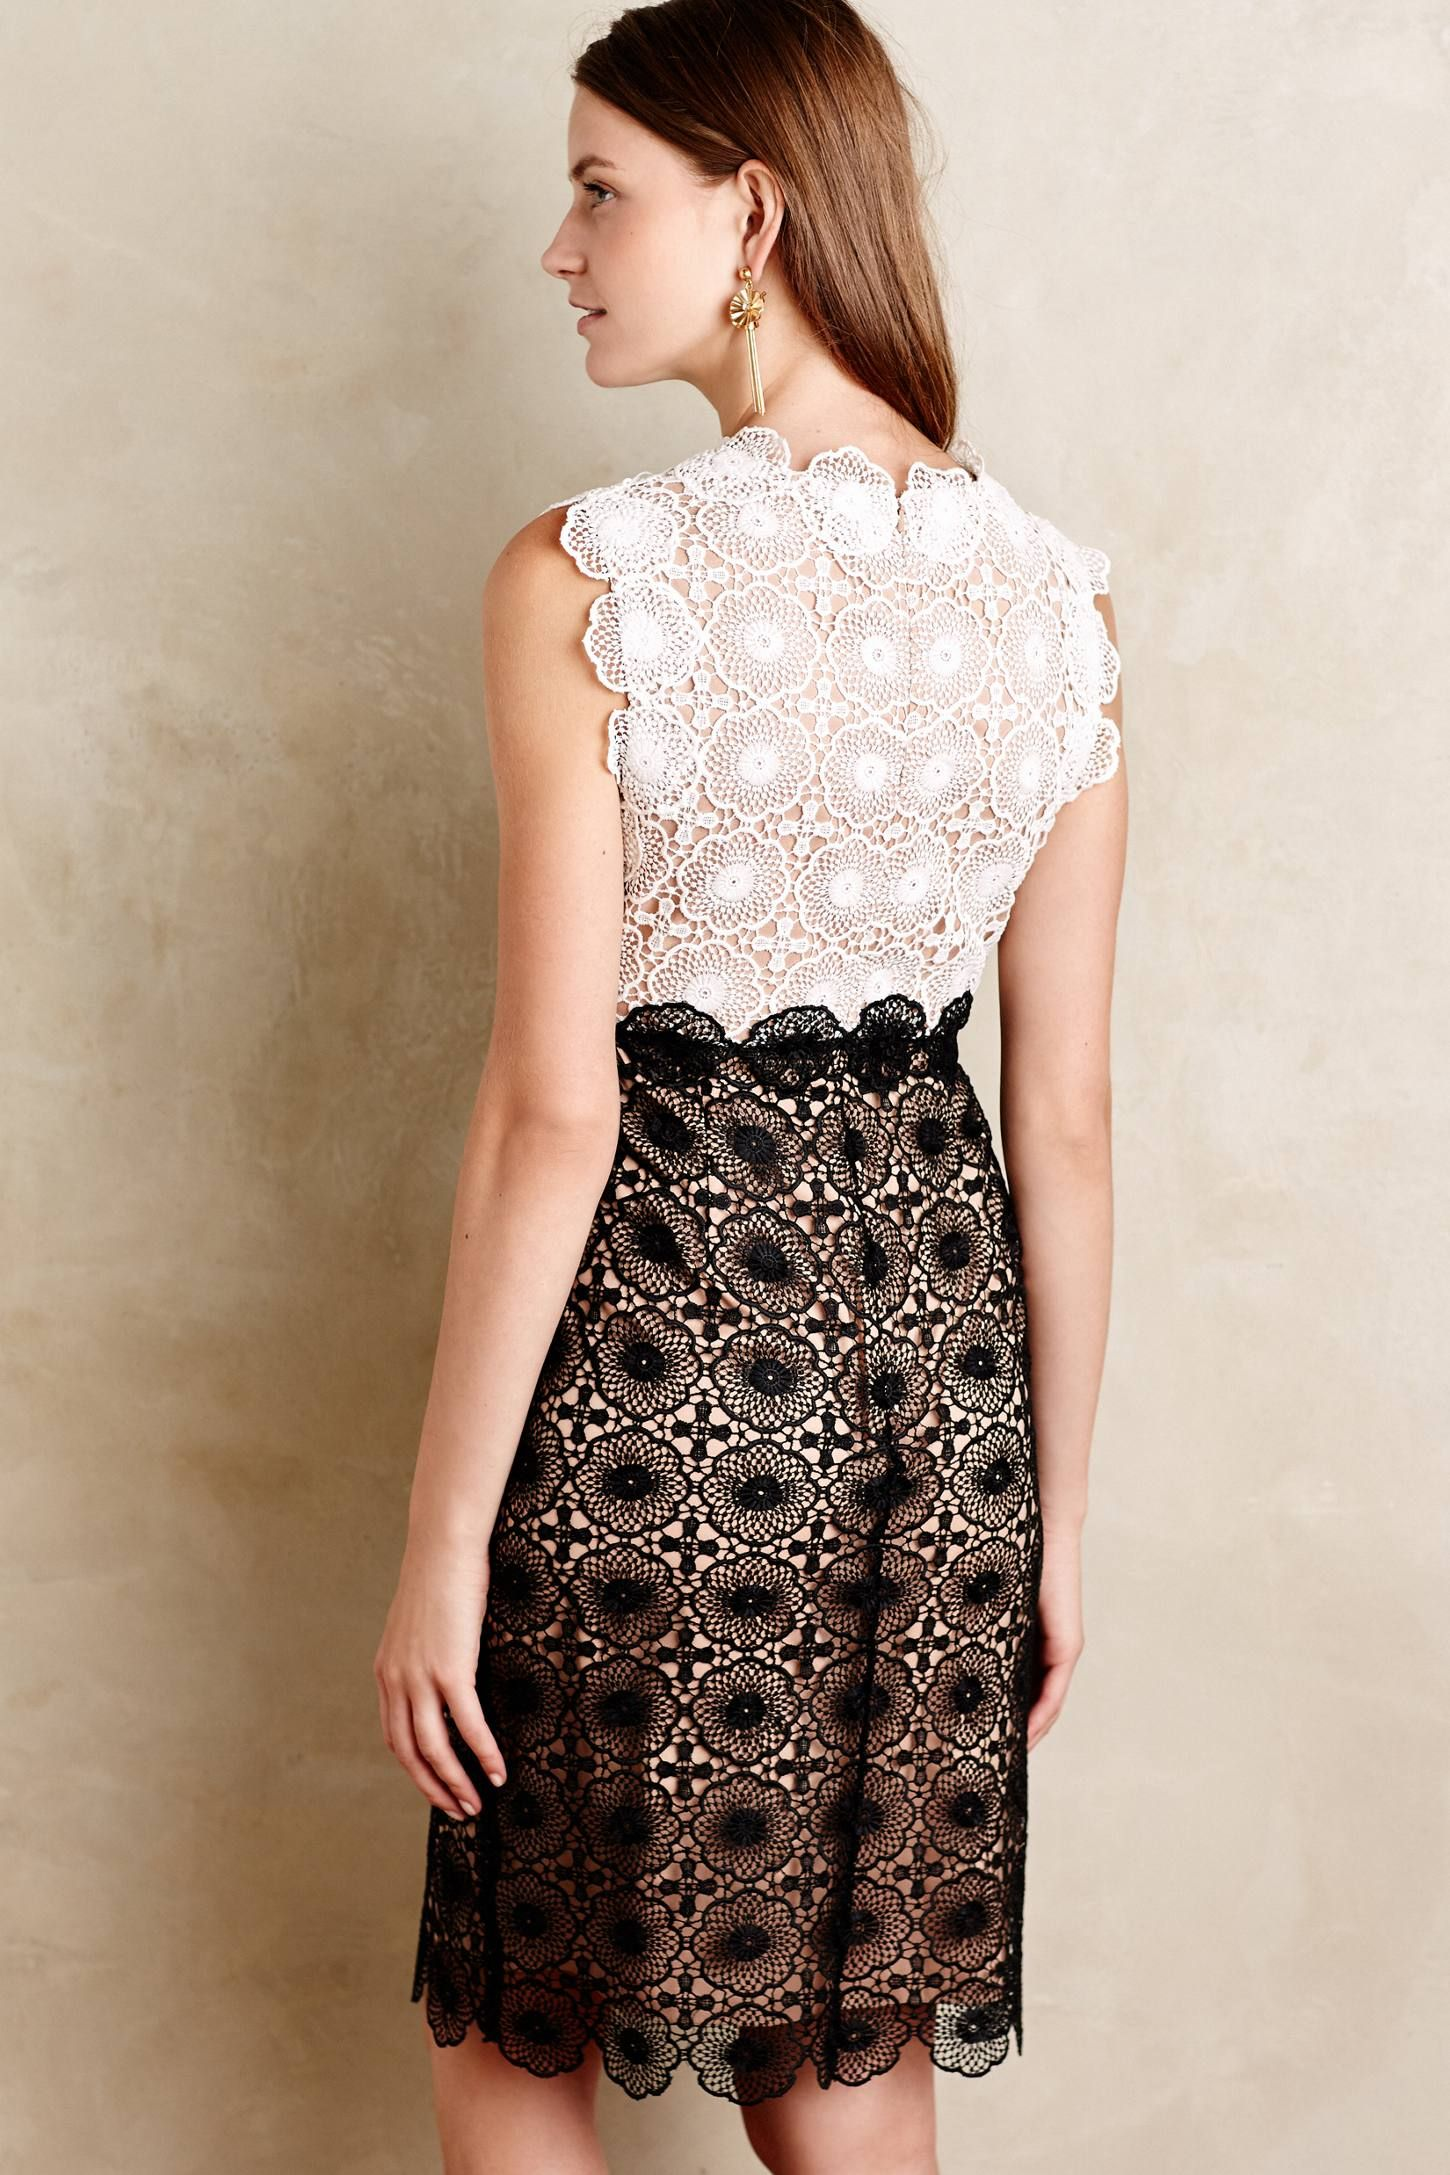 Concerto lace dress lace dress anthropologie and designers